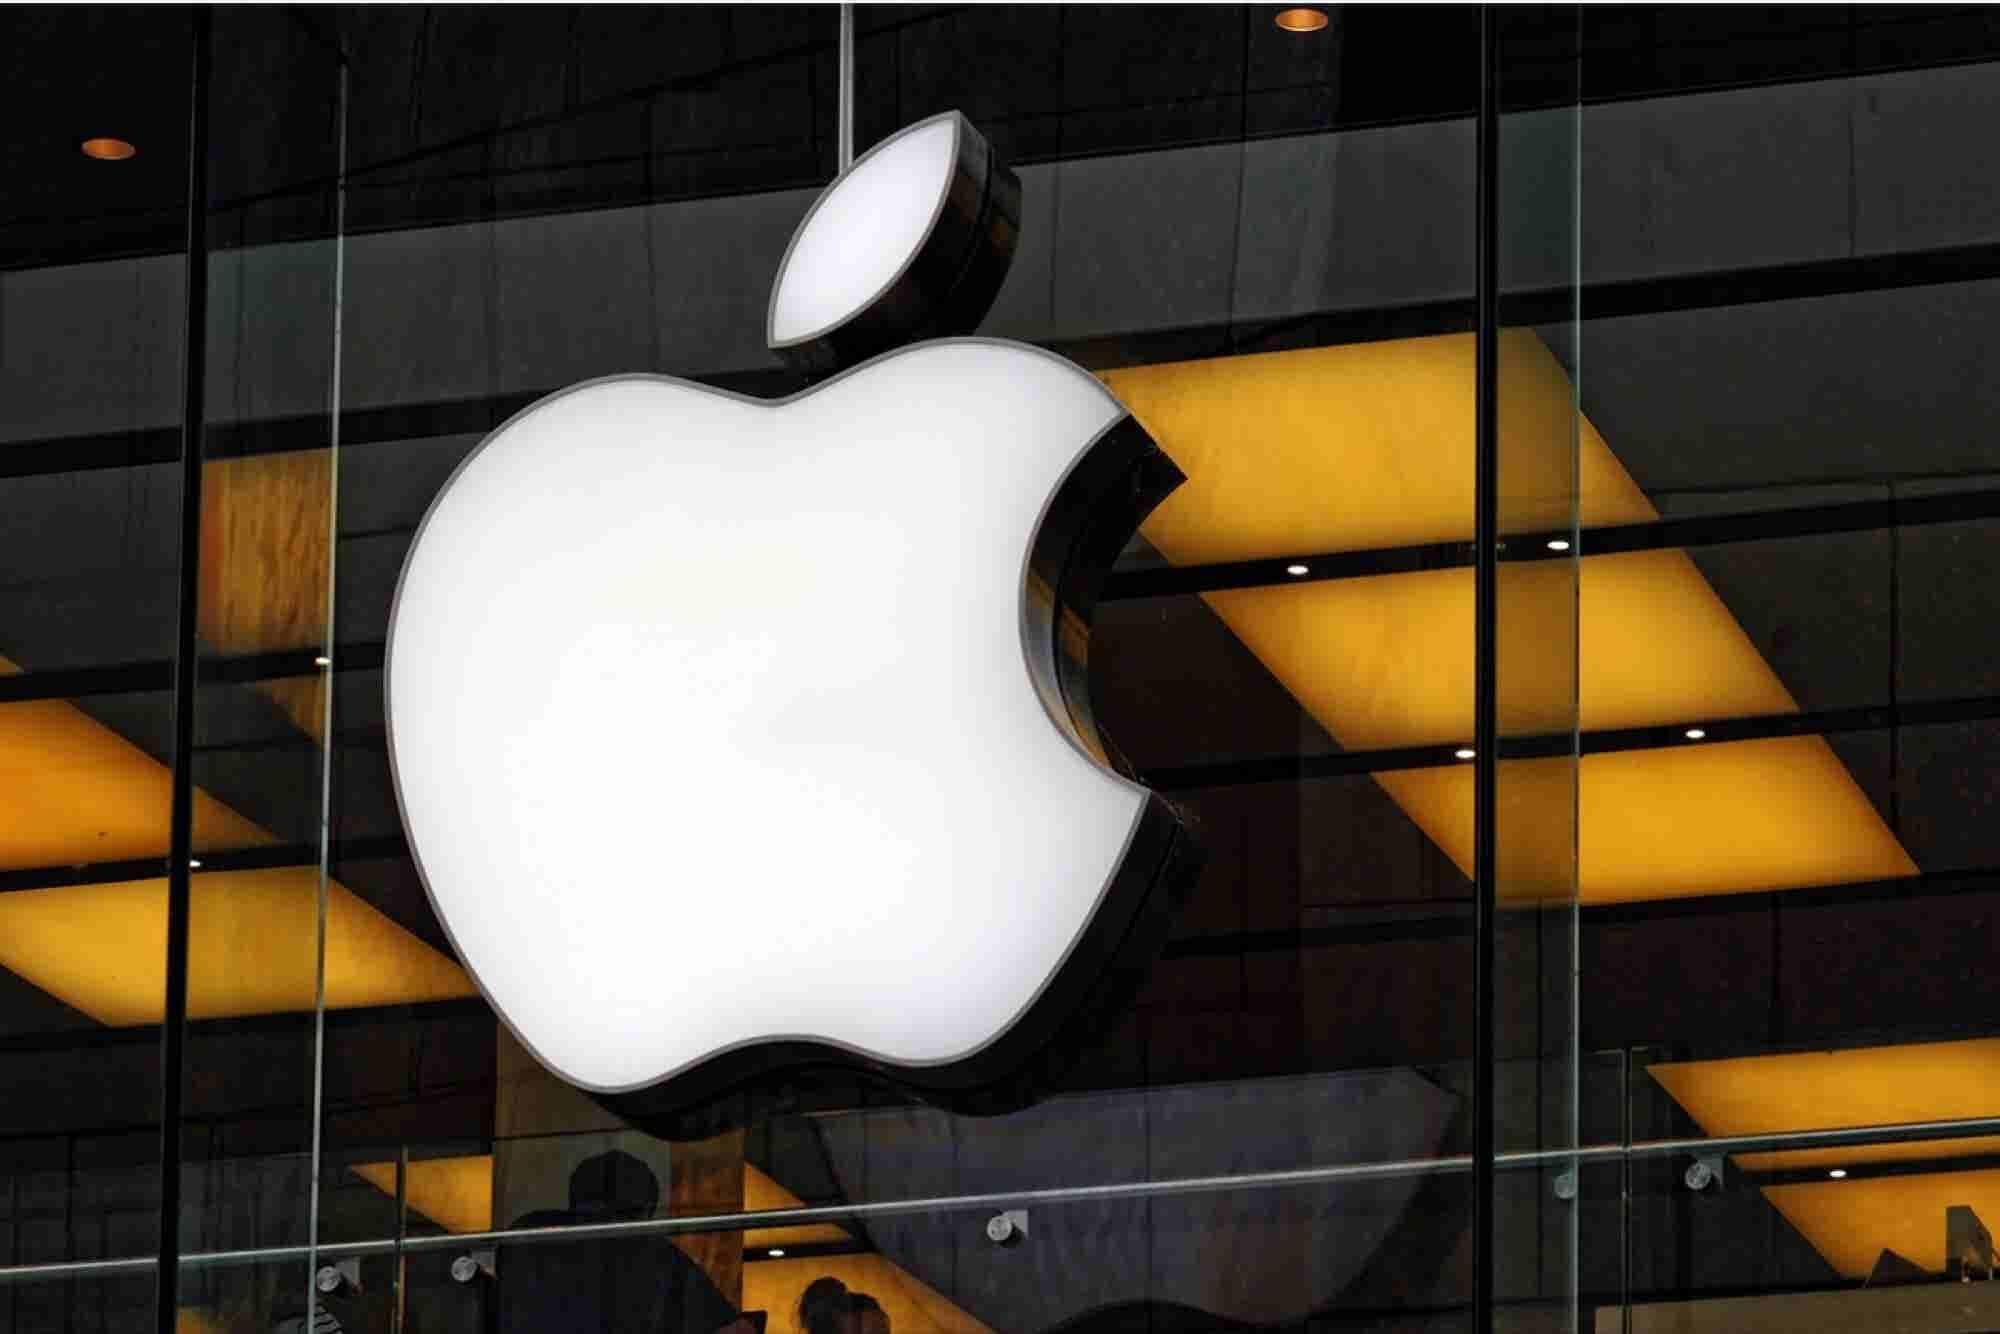 Icahn: We're Out of Apple, and it's China's Fault